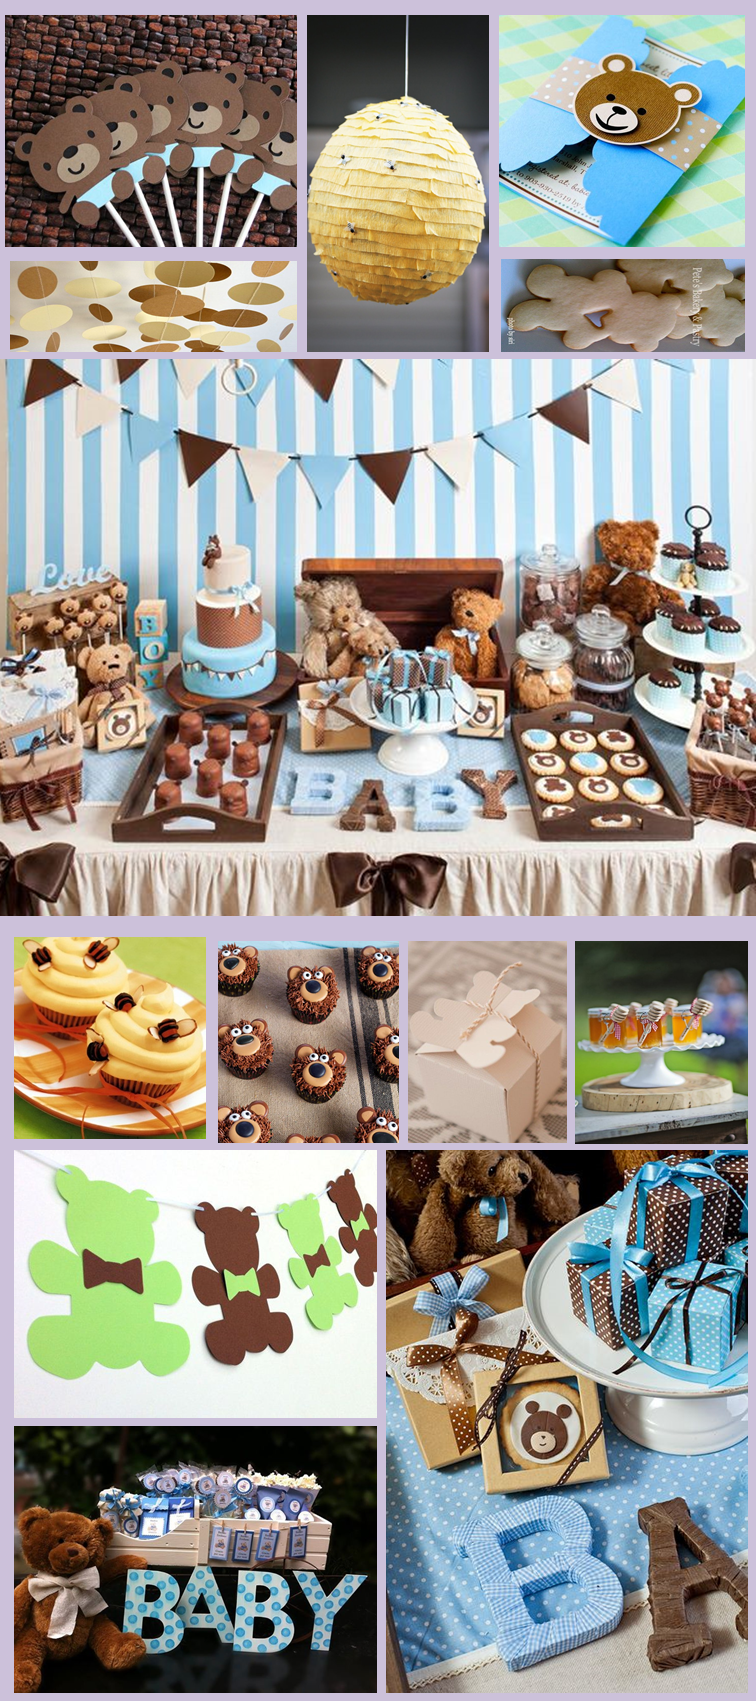 Candy bar teddy bear mesa de dulces botanas y postres for Mesa de dulces para baby shower nino